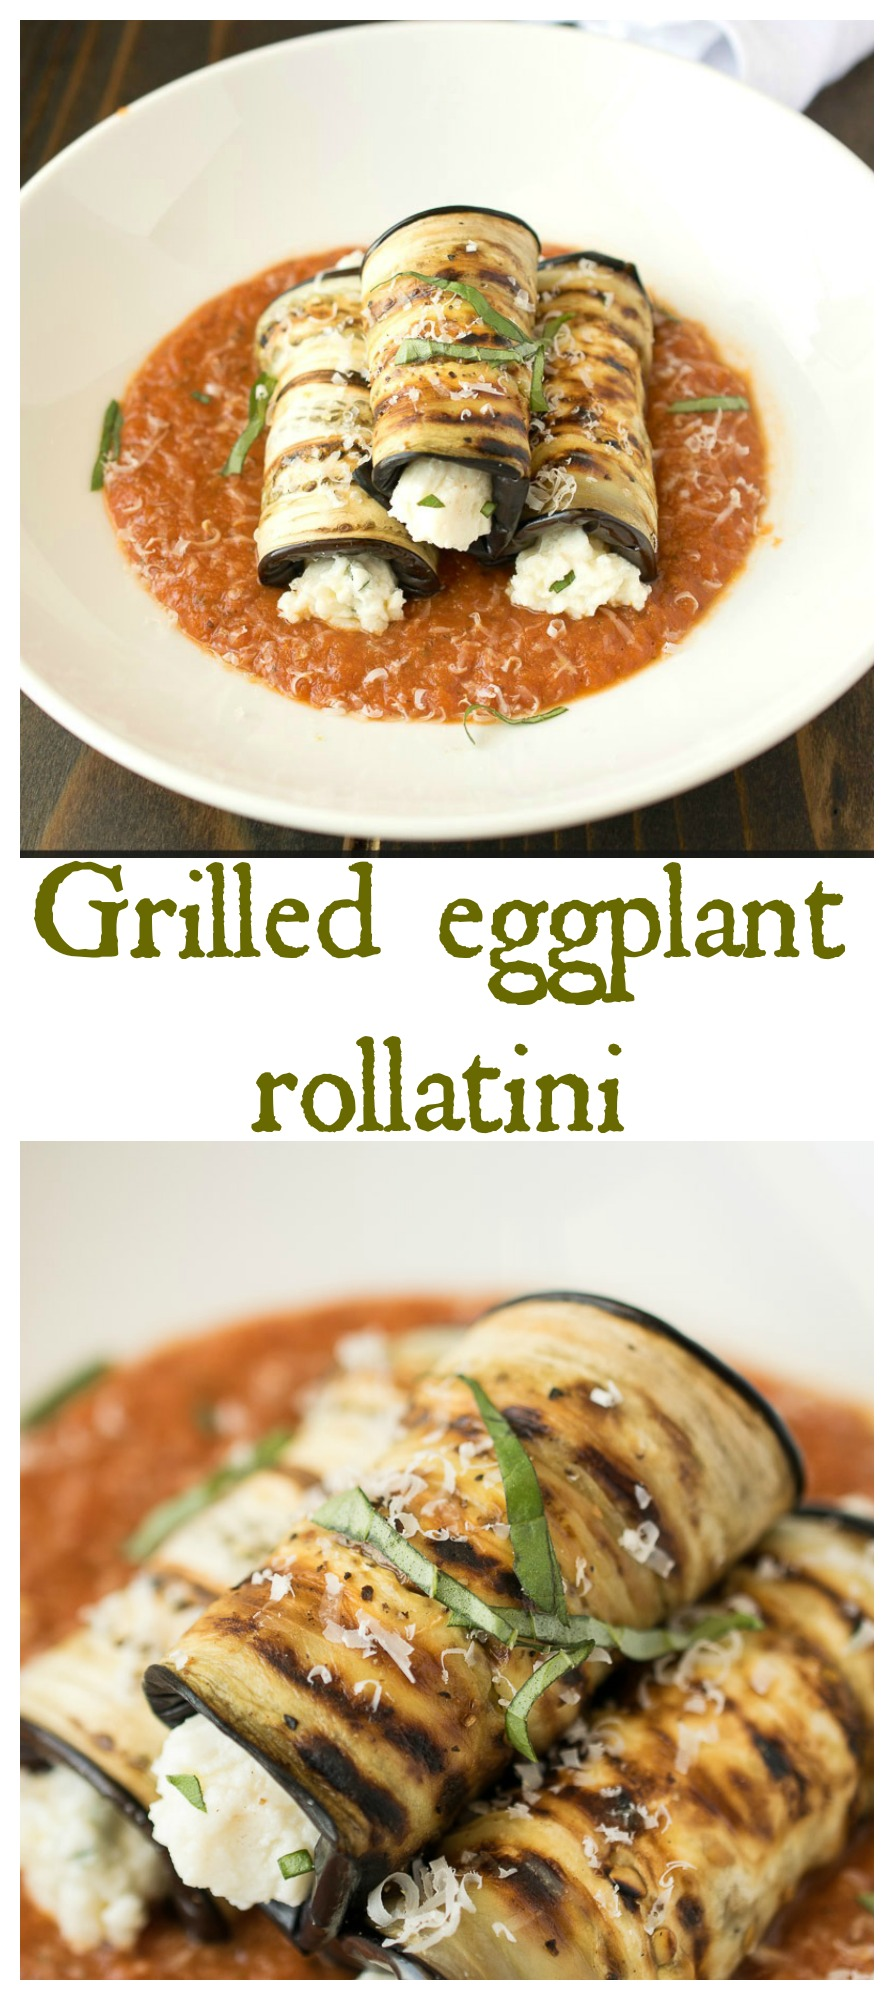 Grilled eggplant rollatini. Grilled instead of fried, the eggplant is rolled up with homemade ricotta, fresh basil, fresh lemon and a hint of nutmeg. Delicious appetizers or entreé.